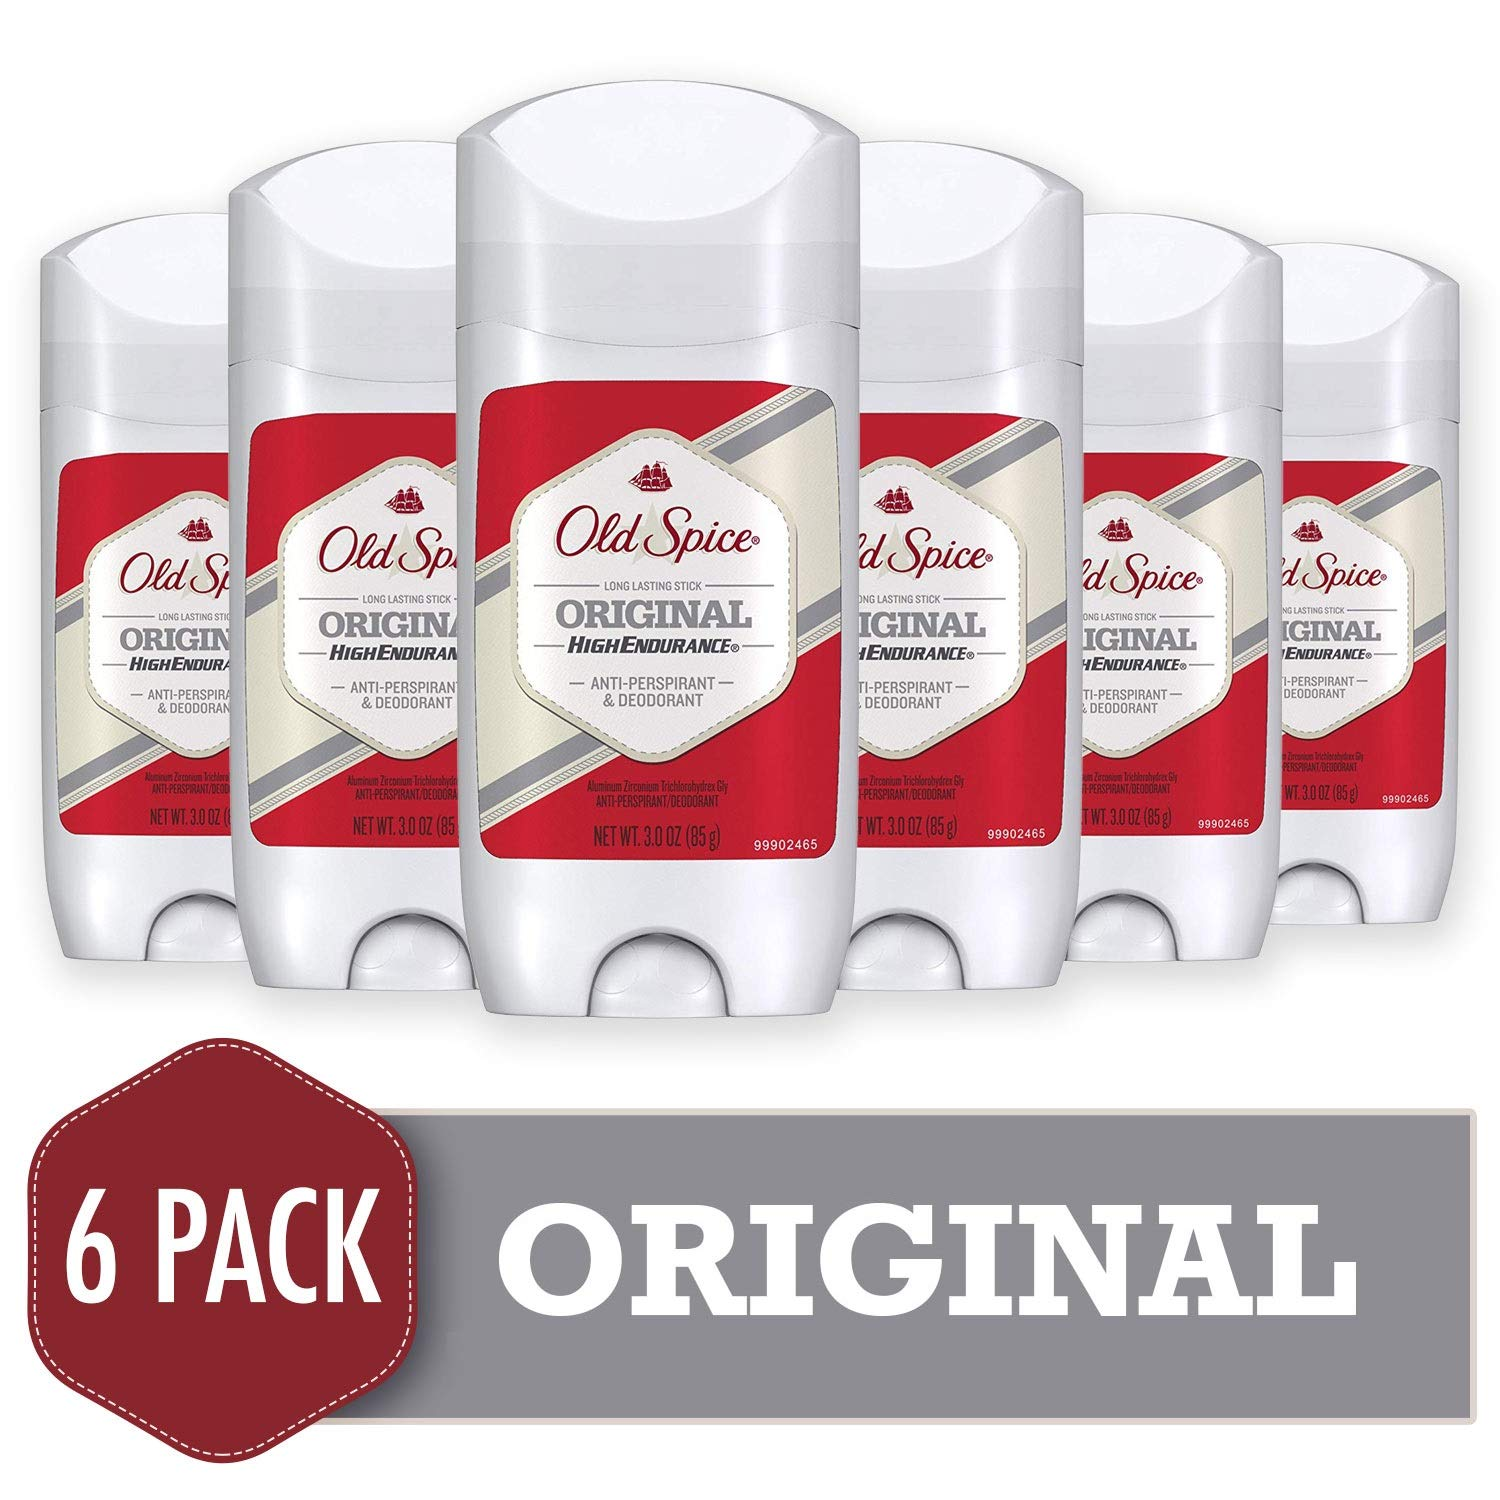 Old Spice Antiperspirant and Deodorant for Men, High Endurance, Original,3 Oz (Pack of 6)